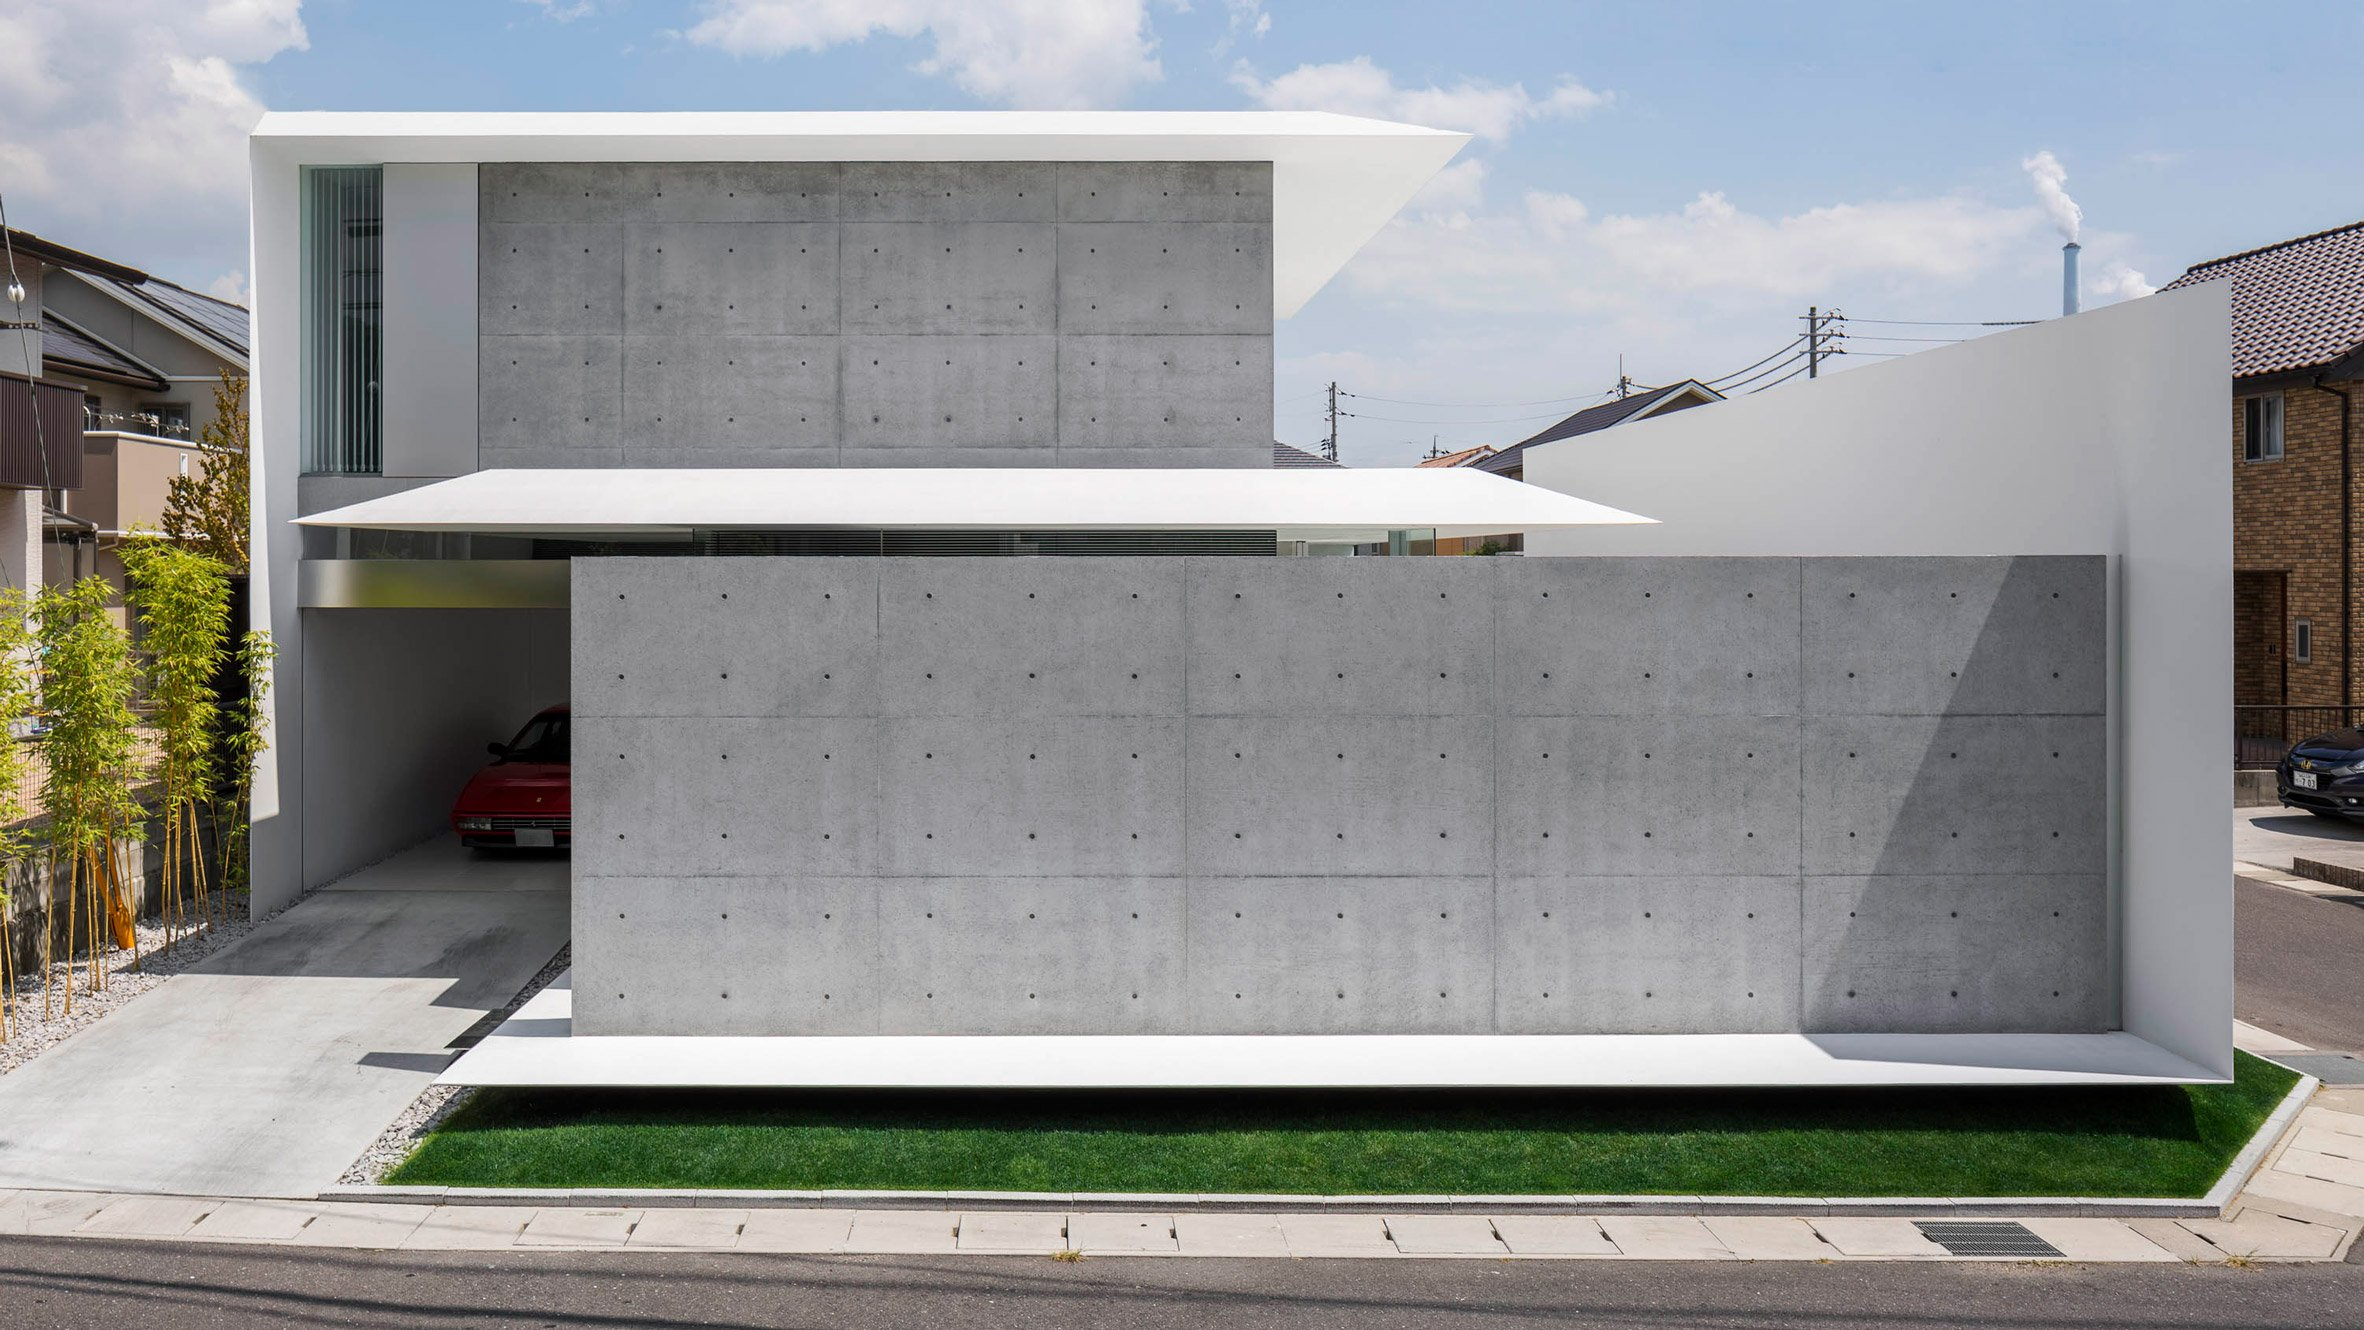 Kubota Architect Atelier Combines Delicately Tapered Surfaces With Sturdy Concrete Walls For Fu House